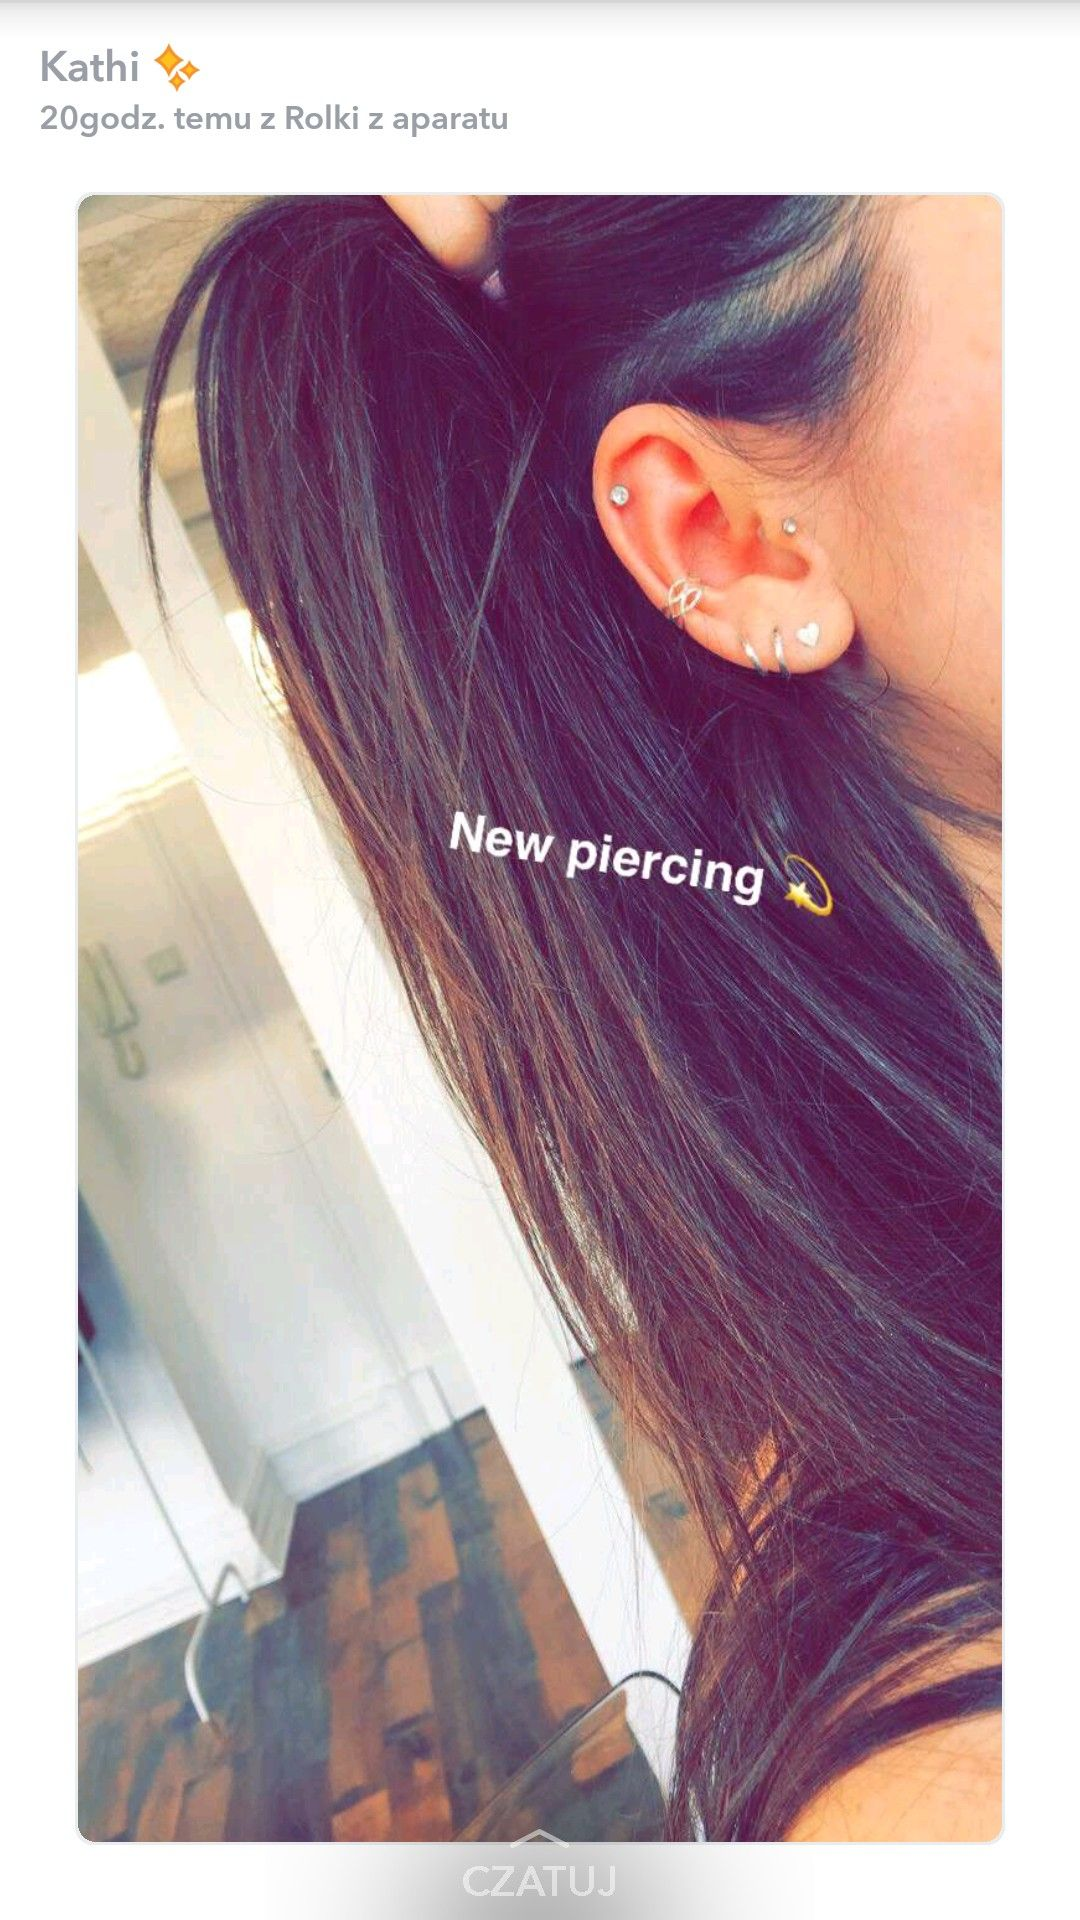 New piercing ideas  Pin by Courtney Kinch on Piercings  Pinterest  Piercings Piercing